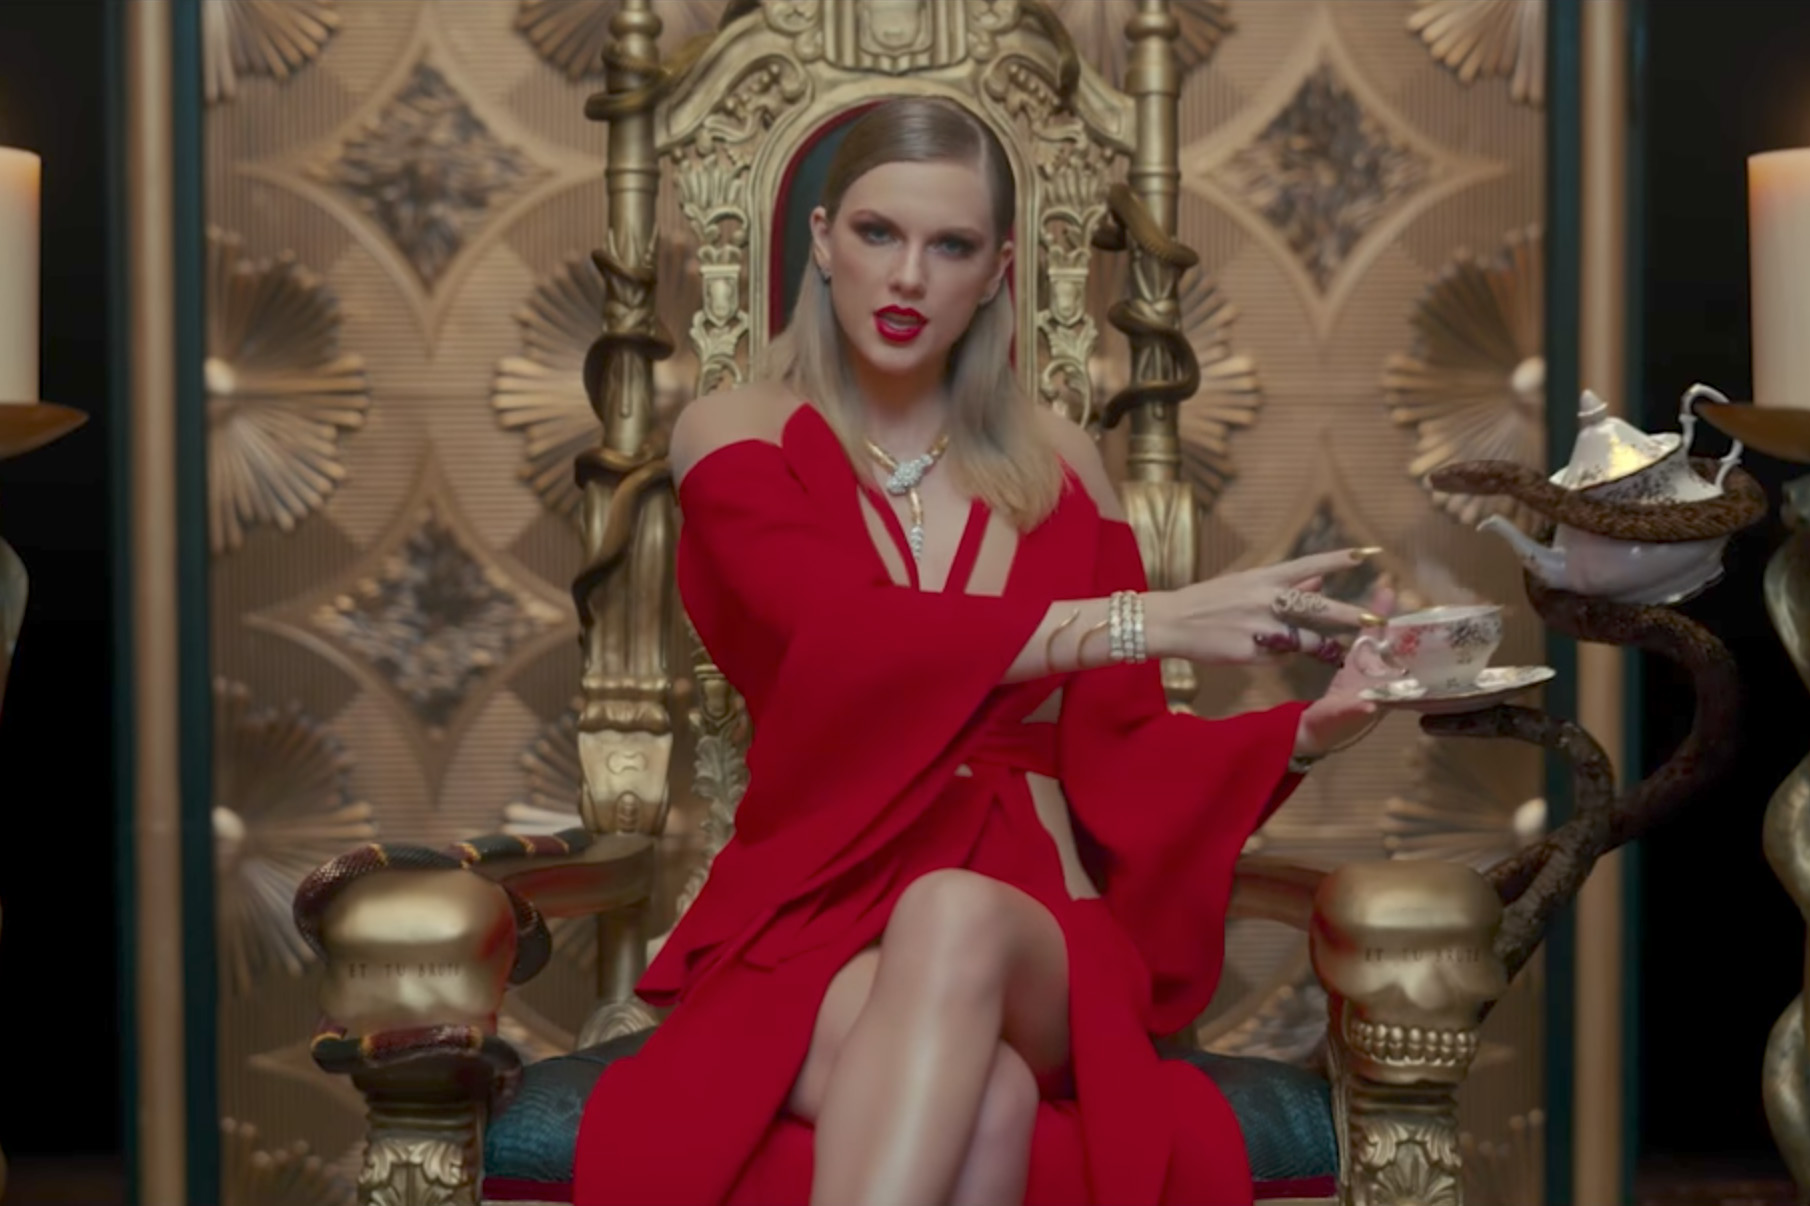 Taylor swift video look what you made me do meaning